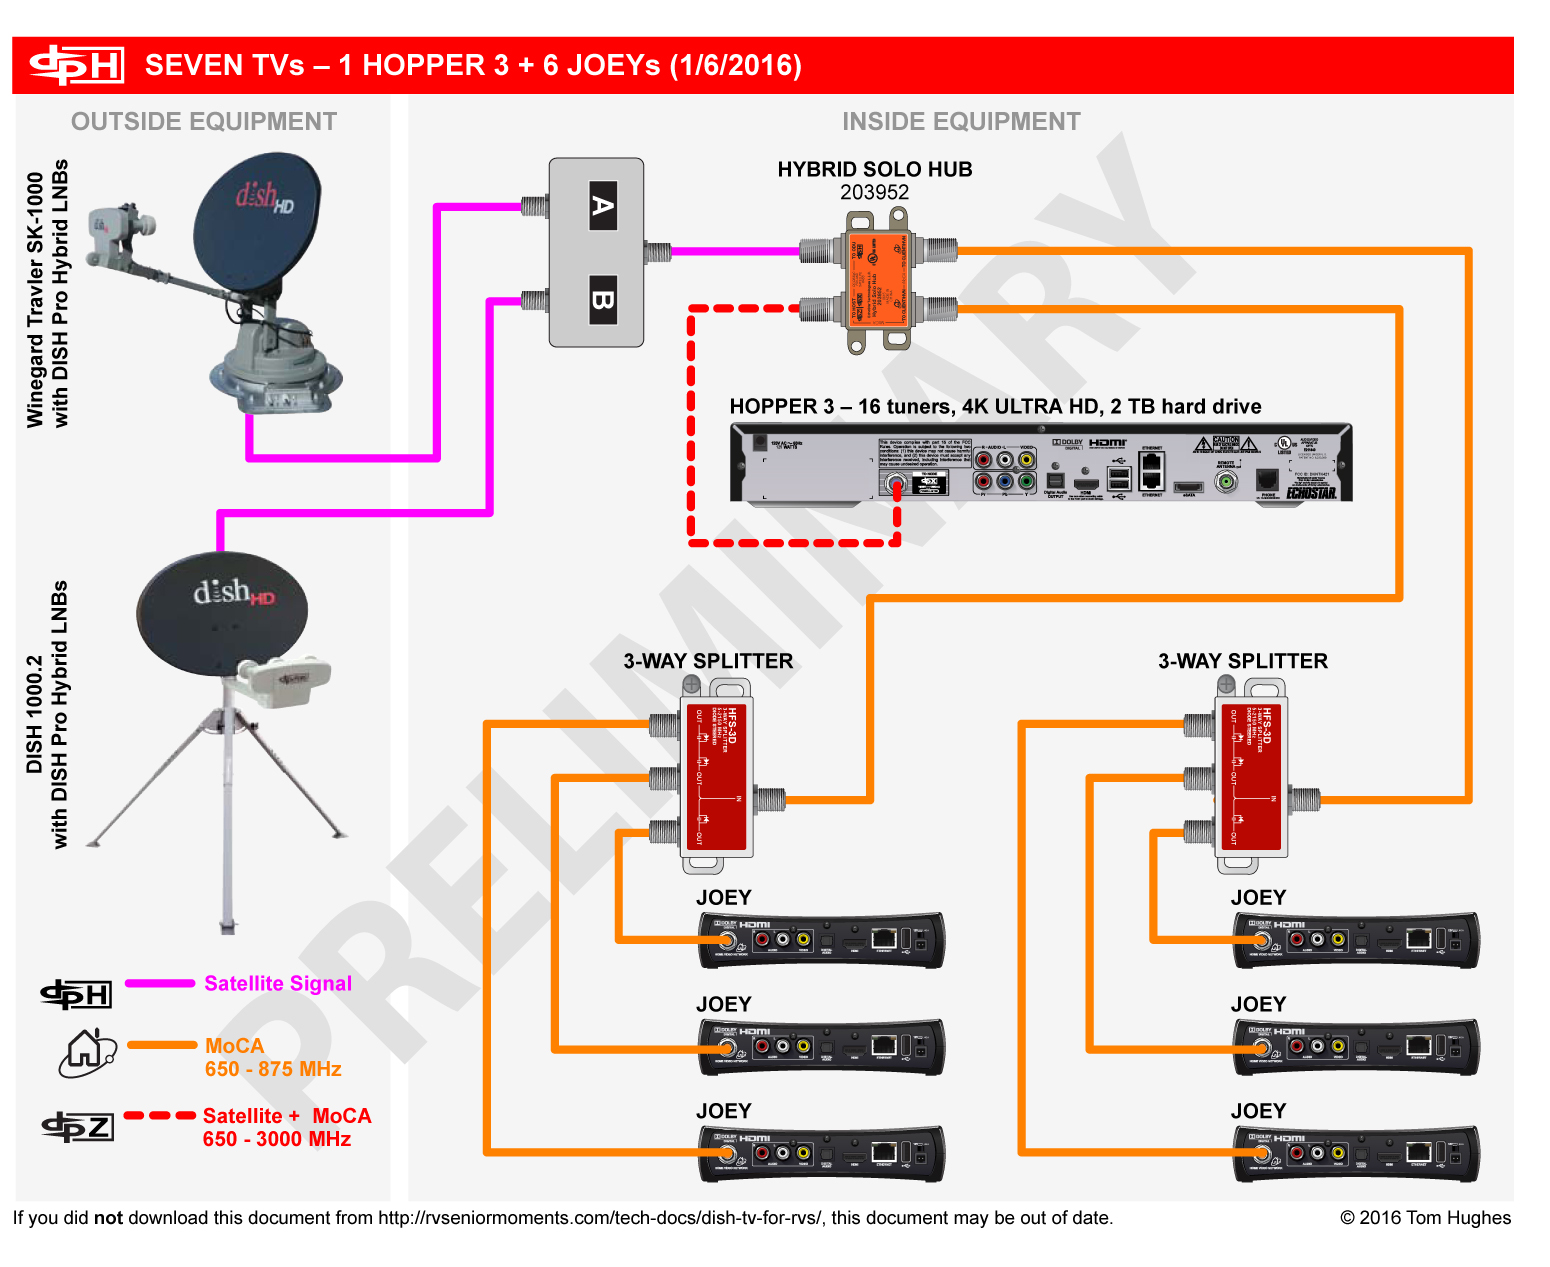 playstation 3 hook up diagram playstation get free image about wiring diagram